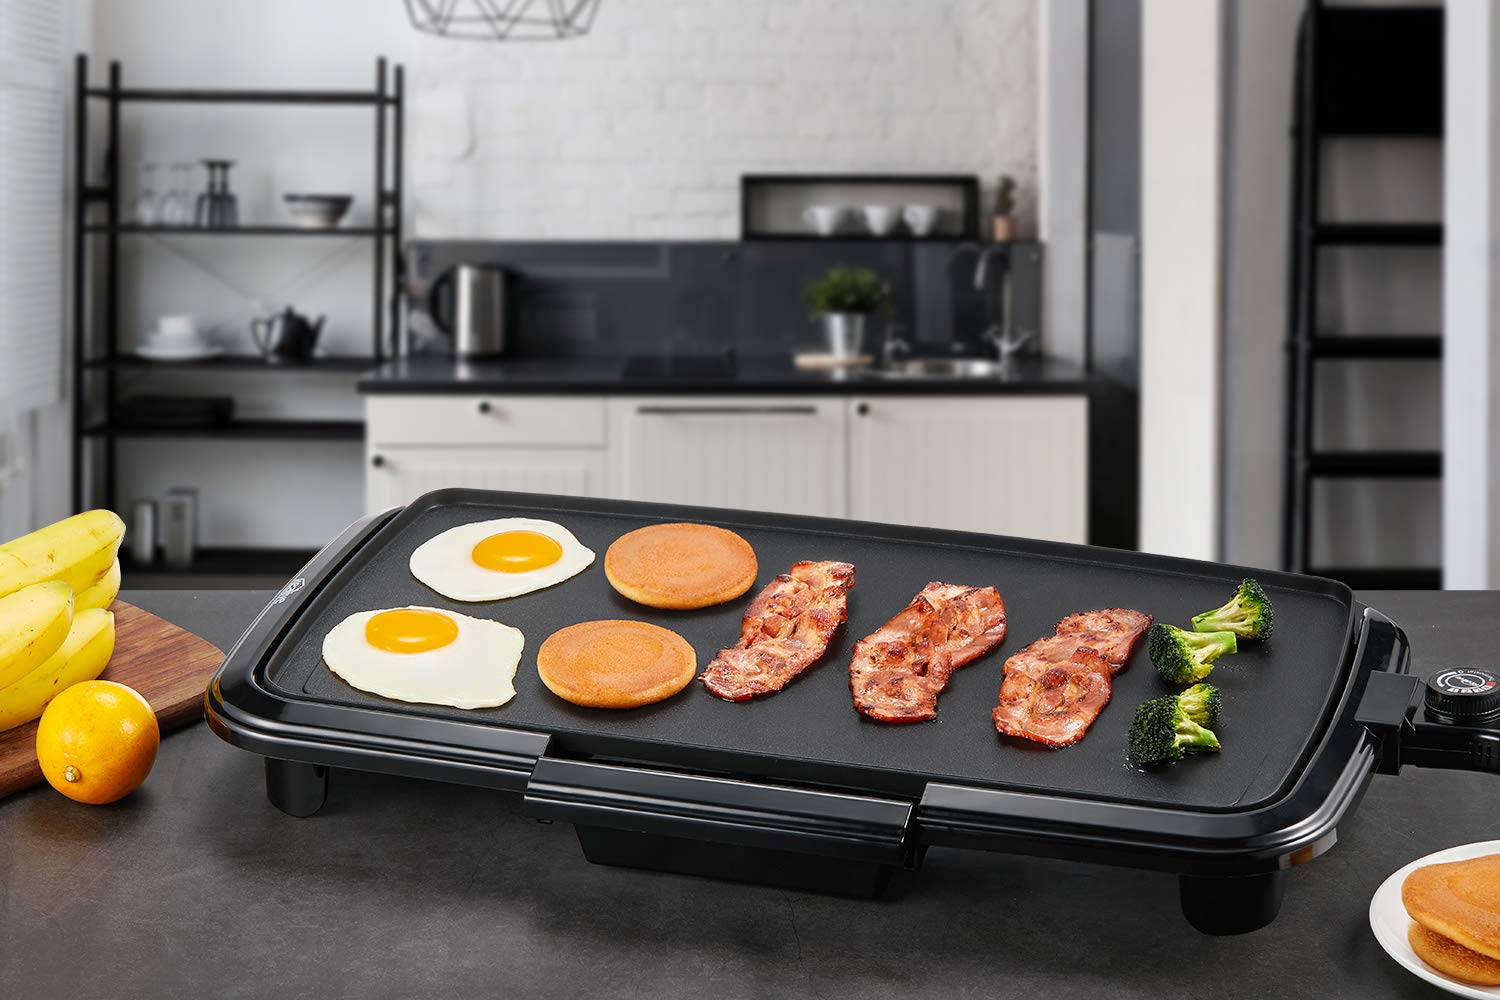 Kealive Griddle, Family-Sized Electric Grill Griddle 1500W with Drip Tray, Non-stick, 10''x20'', Black by Kealive (Image #7)